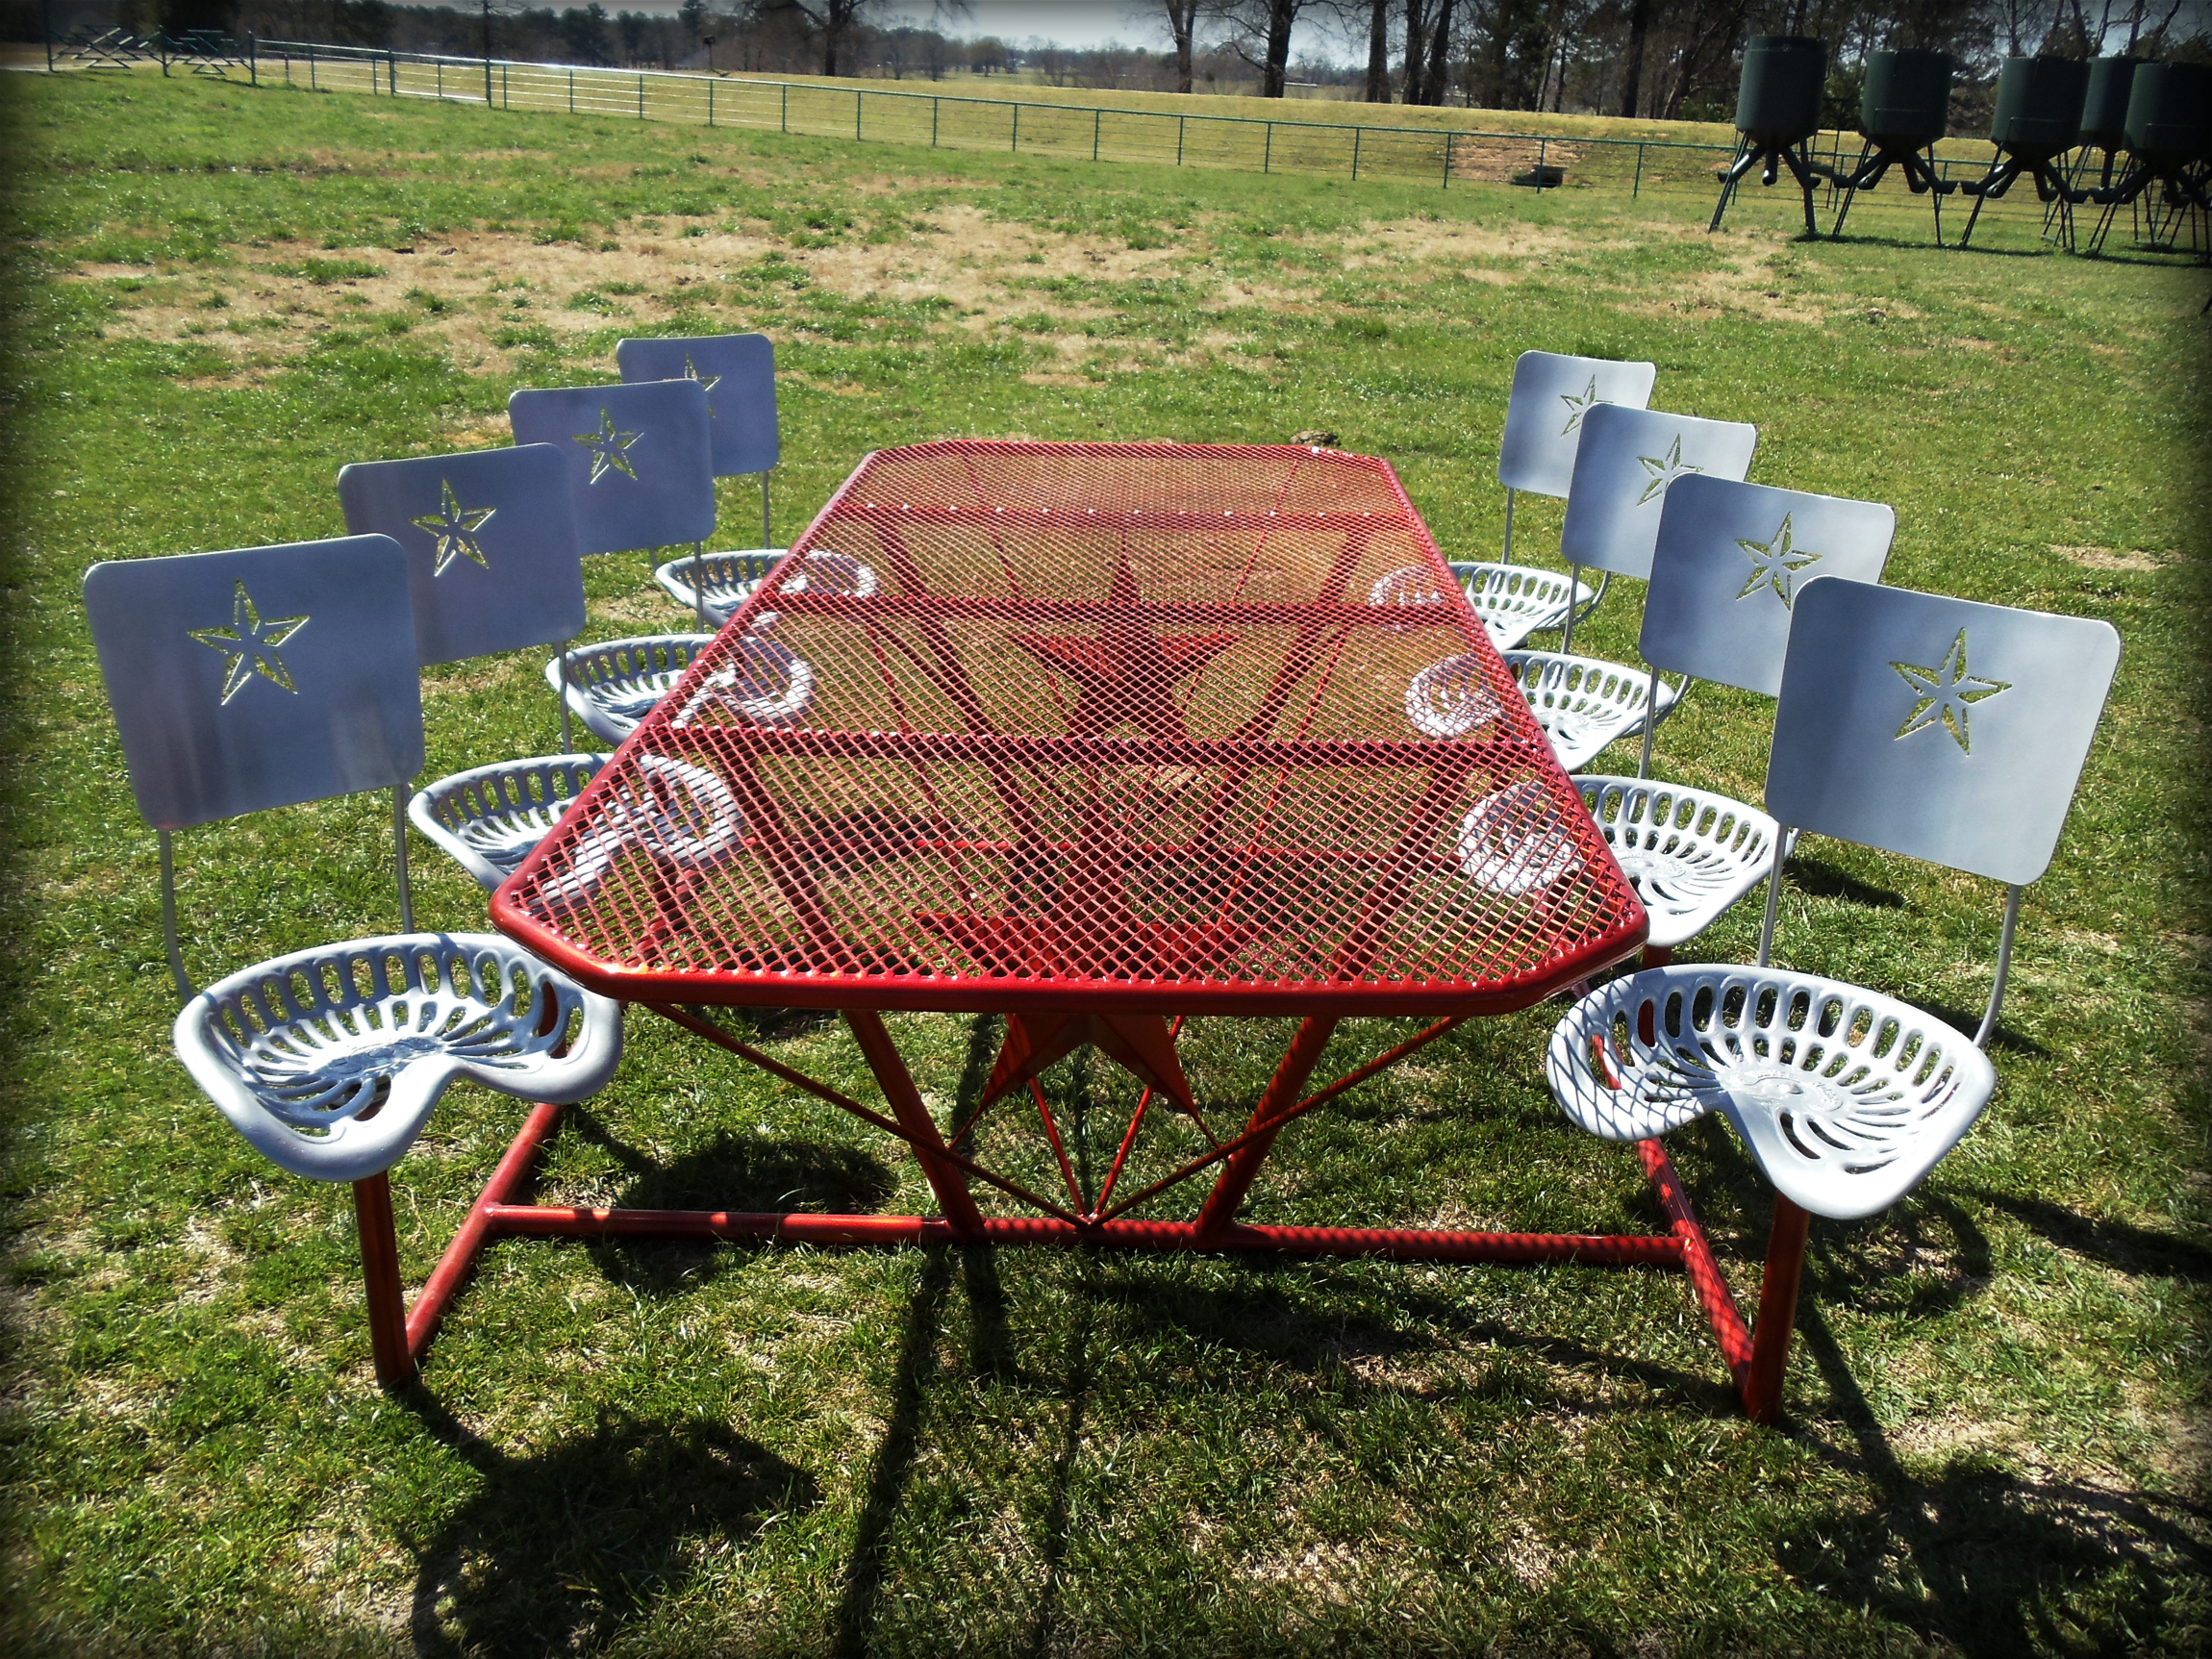 10 ft picnic kickin 39 back kreations kickinbackkreations for 10 ft picnic table